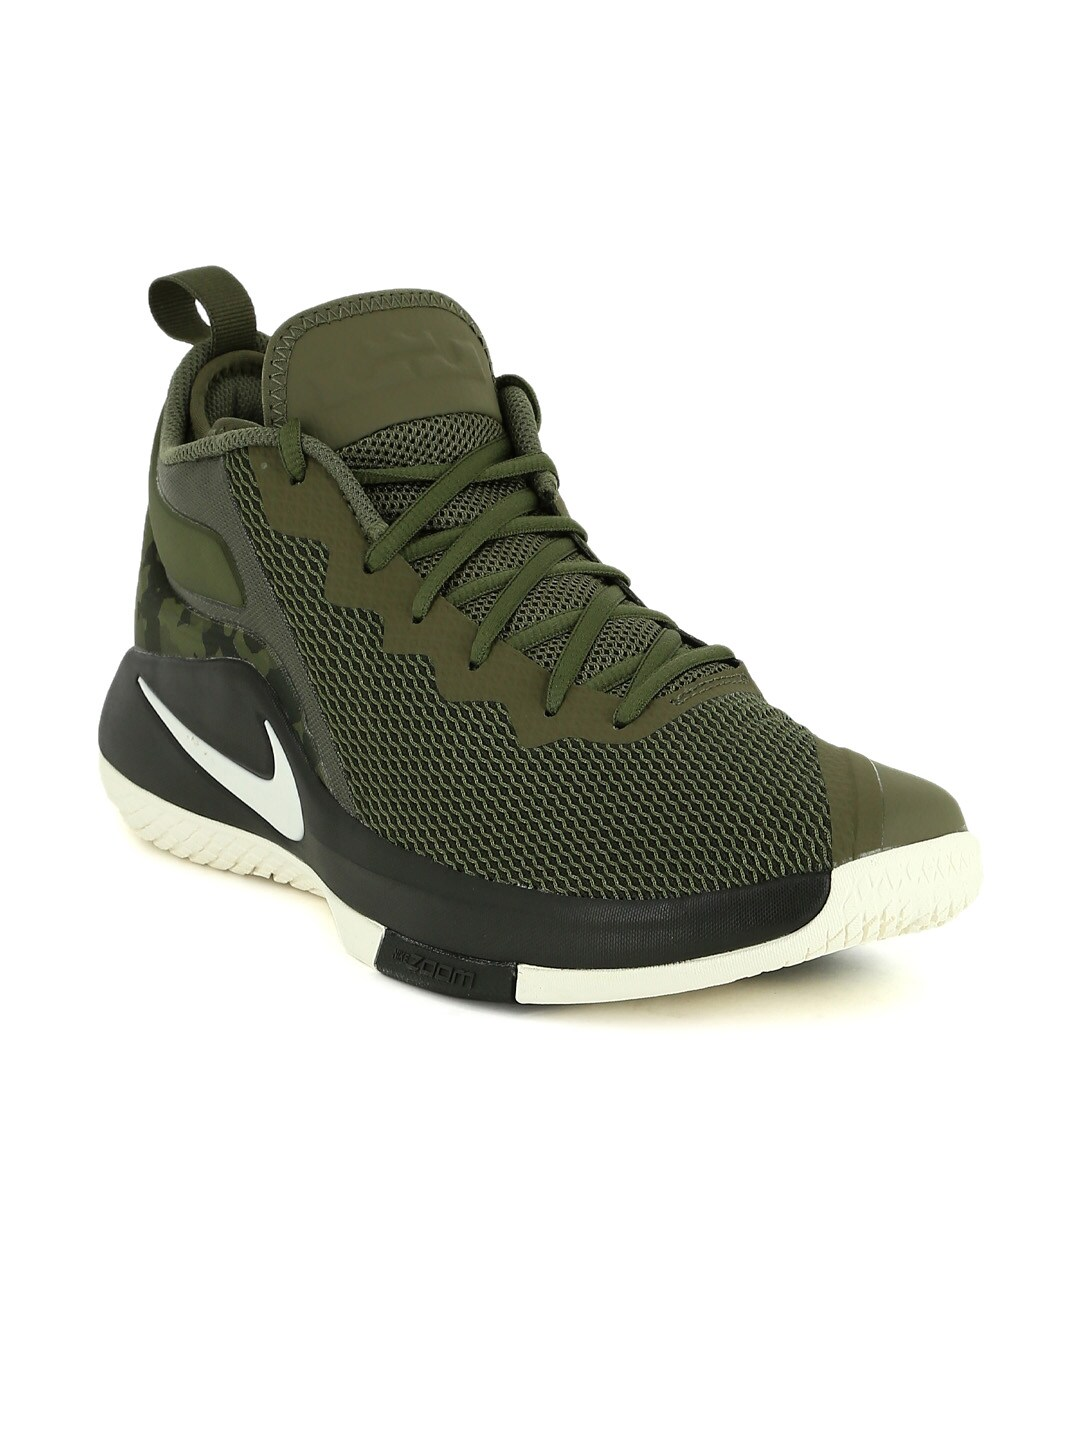 618a87317a7f Nike Men Basketball Shoes - Buy Nike Men Basketball Shoes online in India